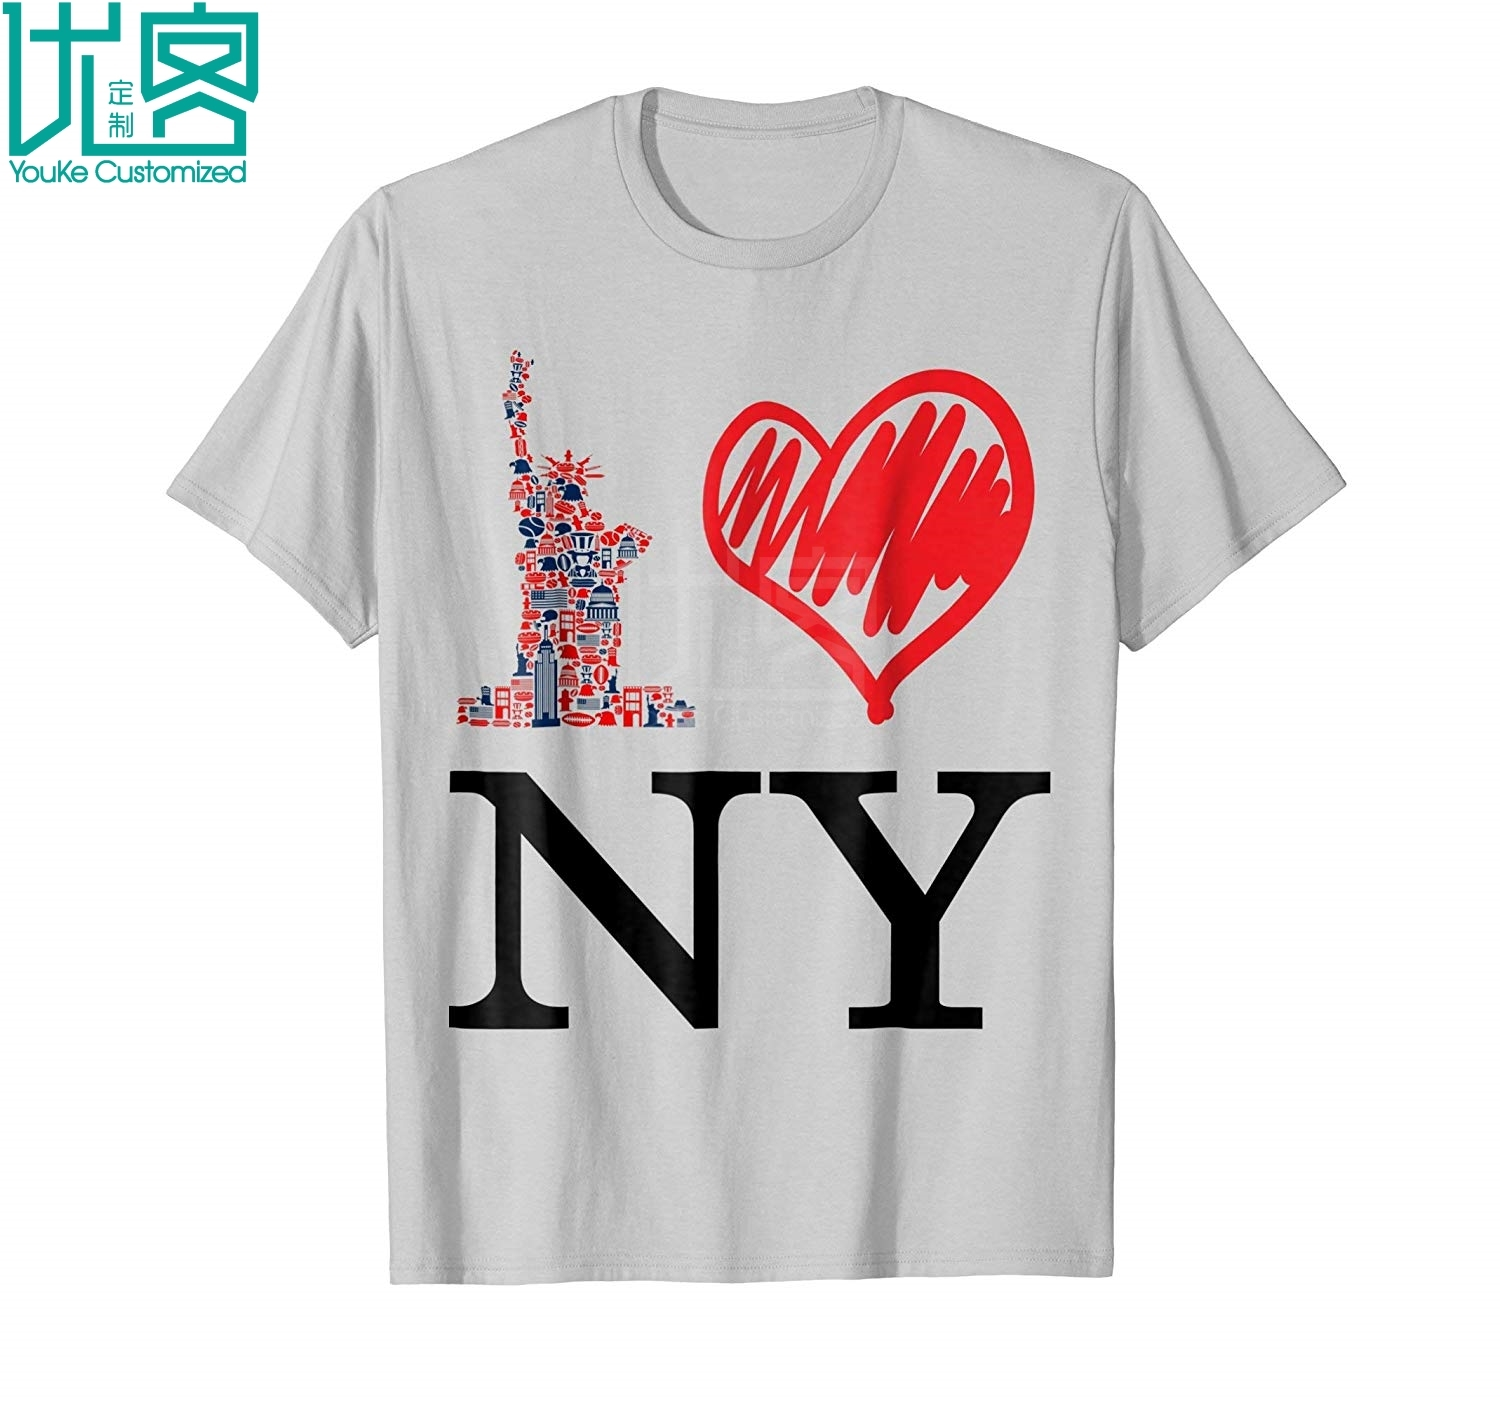 <font><b>I</b></font> <font><b>Love</b></font> New York T <font><b>Shirt</b></font> Heart <font><b>Ny</b></font> Gift Tshirt Amazing Short Sleeve Unique Casual Tees 100% Cotton Clothes T <font><b>Shirt</b></font> image